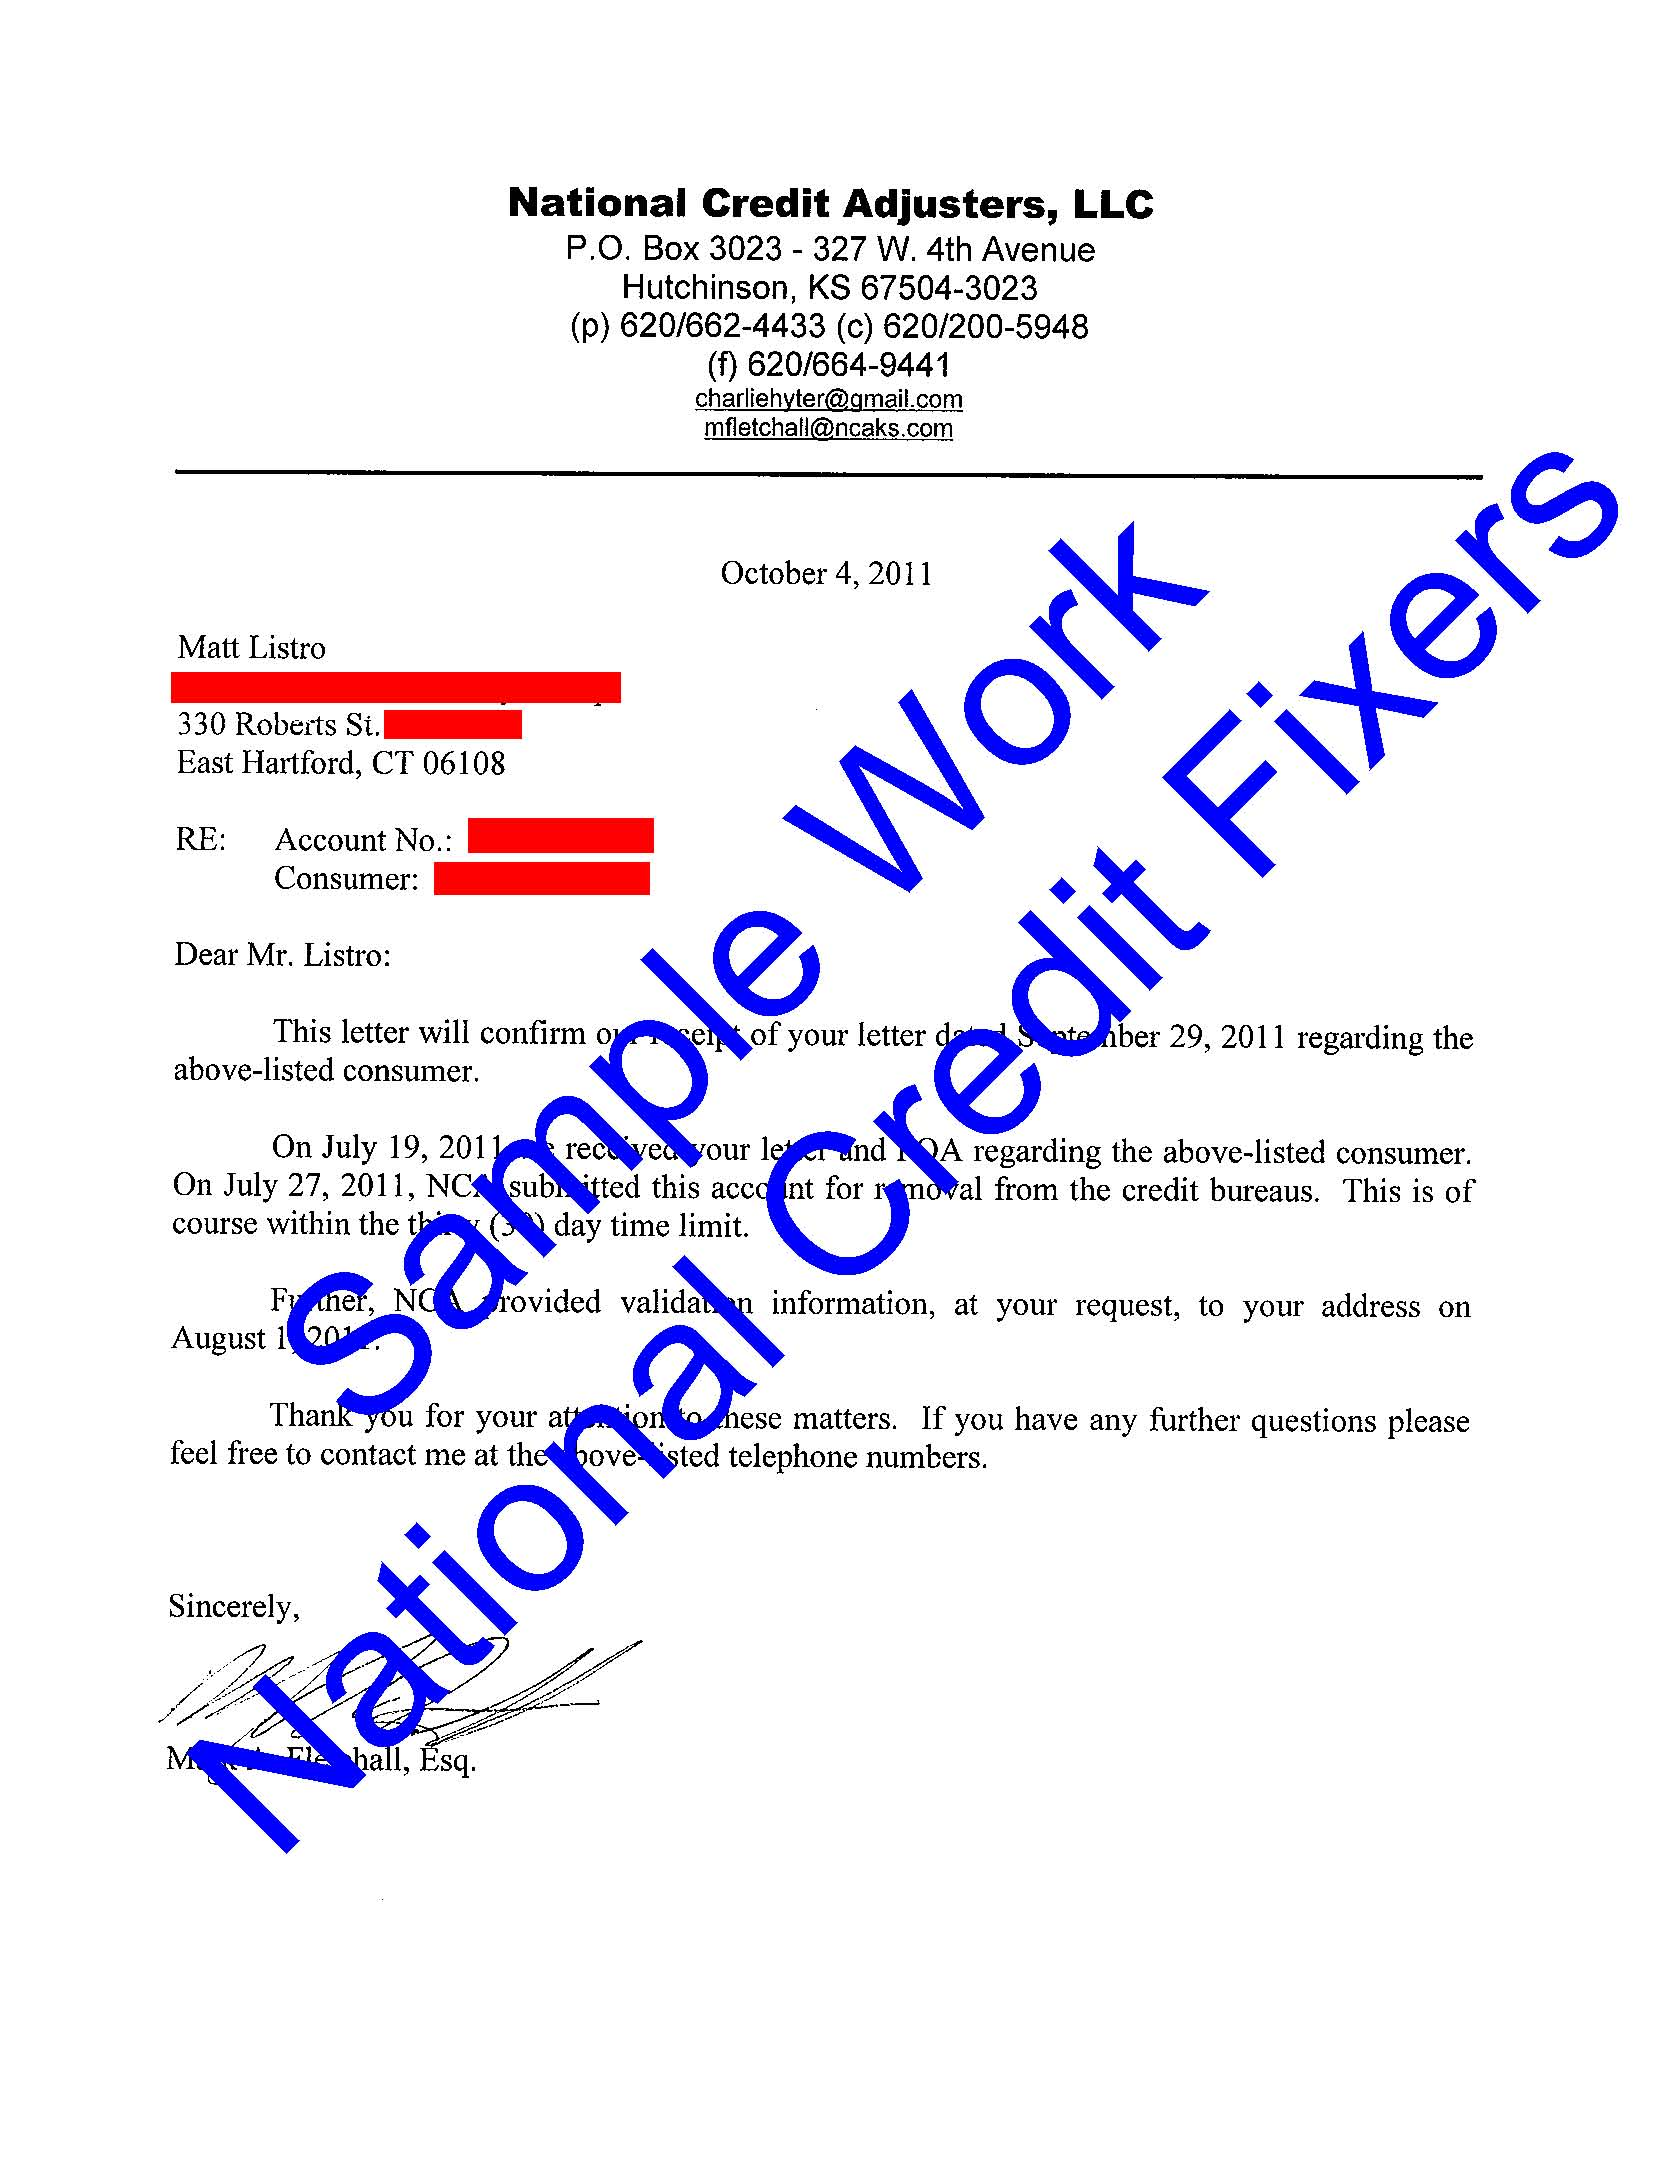 National Credit Adjusters Deletion